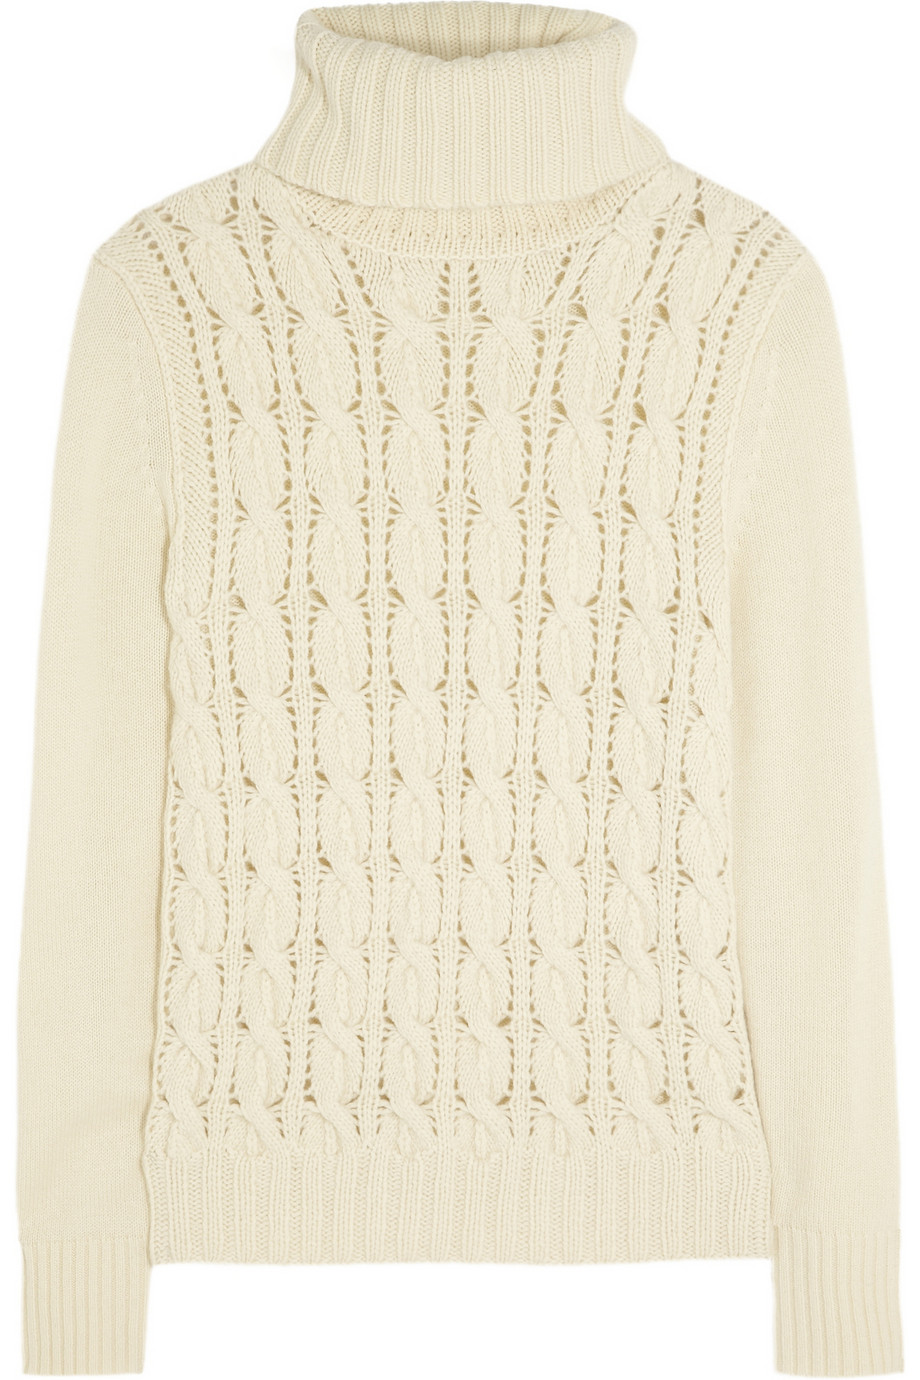 Iris & ink Cableknit Turtleneck Sweater in White | Lyst